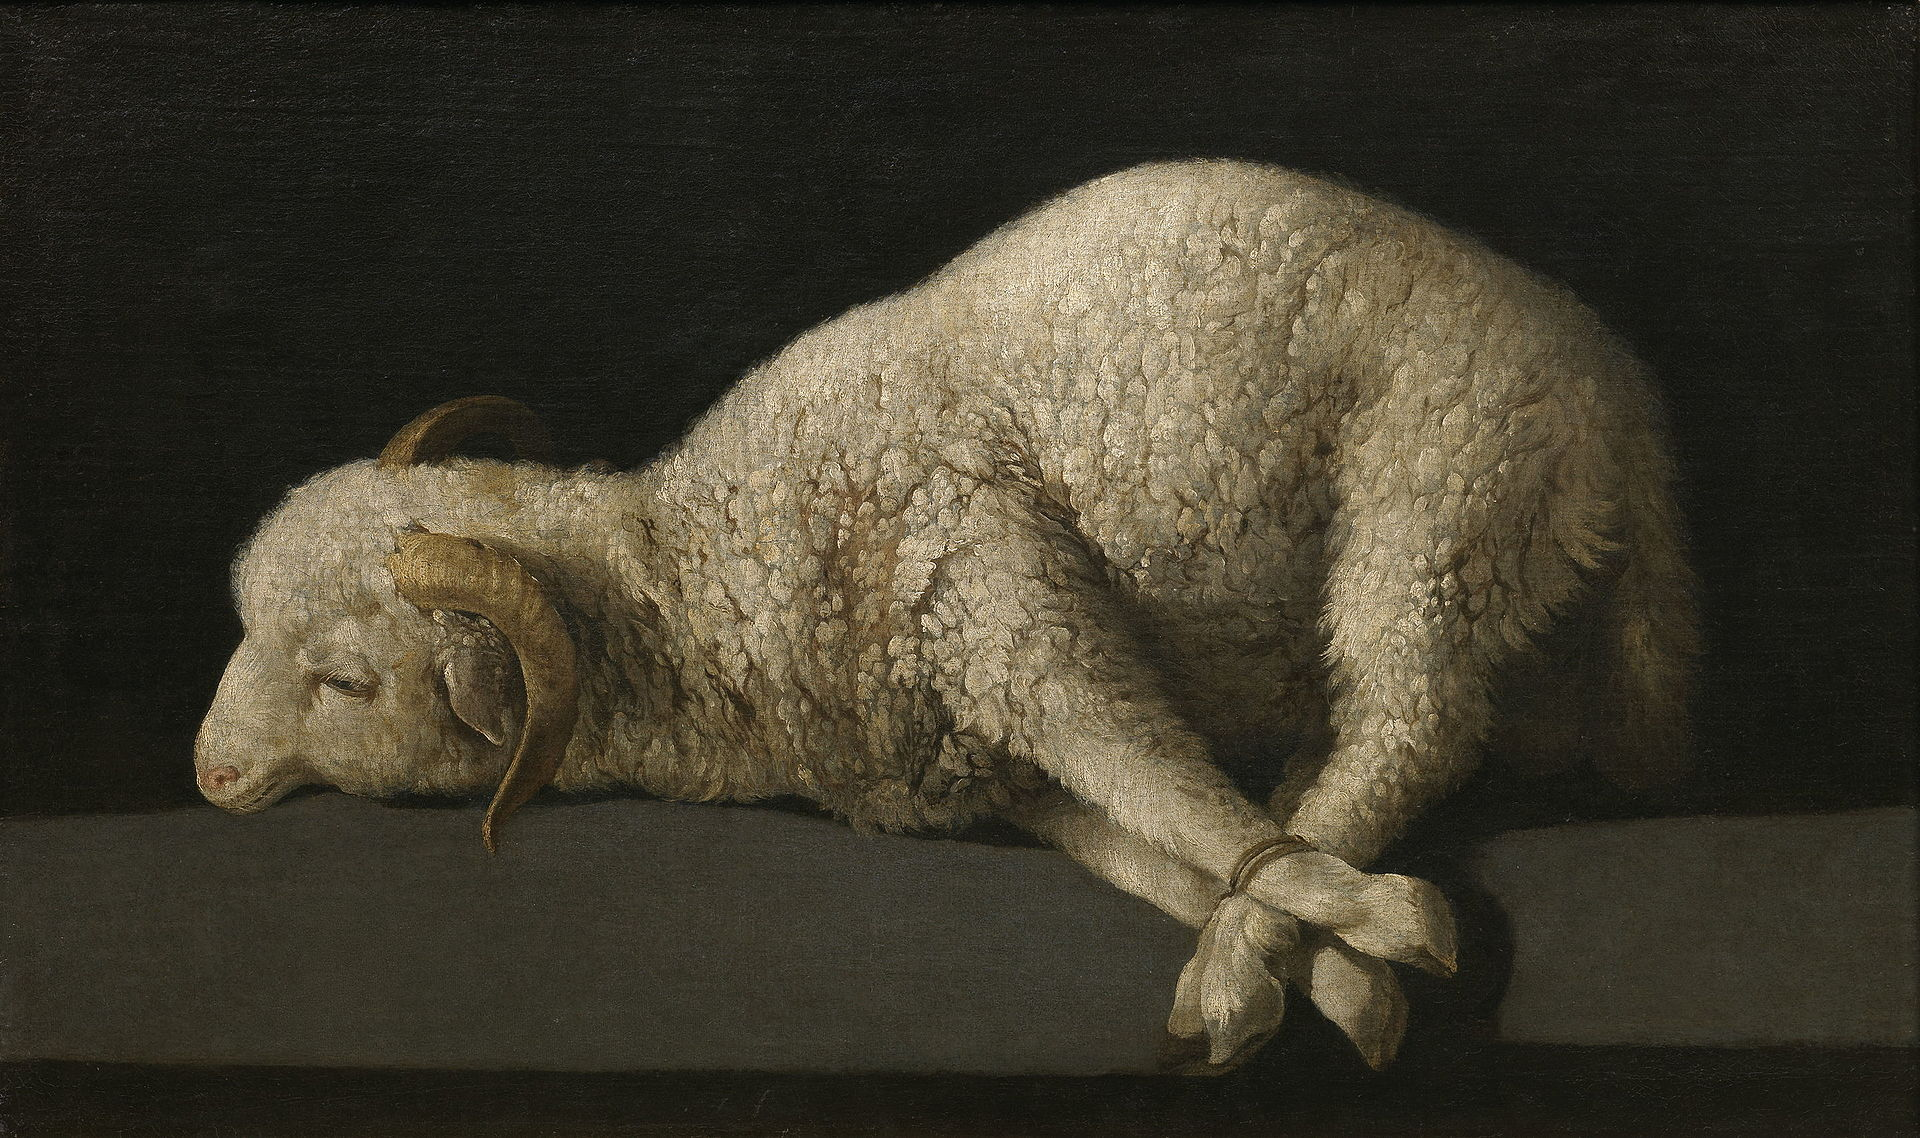 Lamb of God by Zurbaran pubic domain via Wikimedia Common s